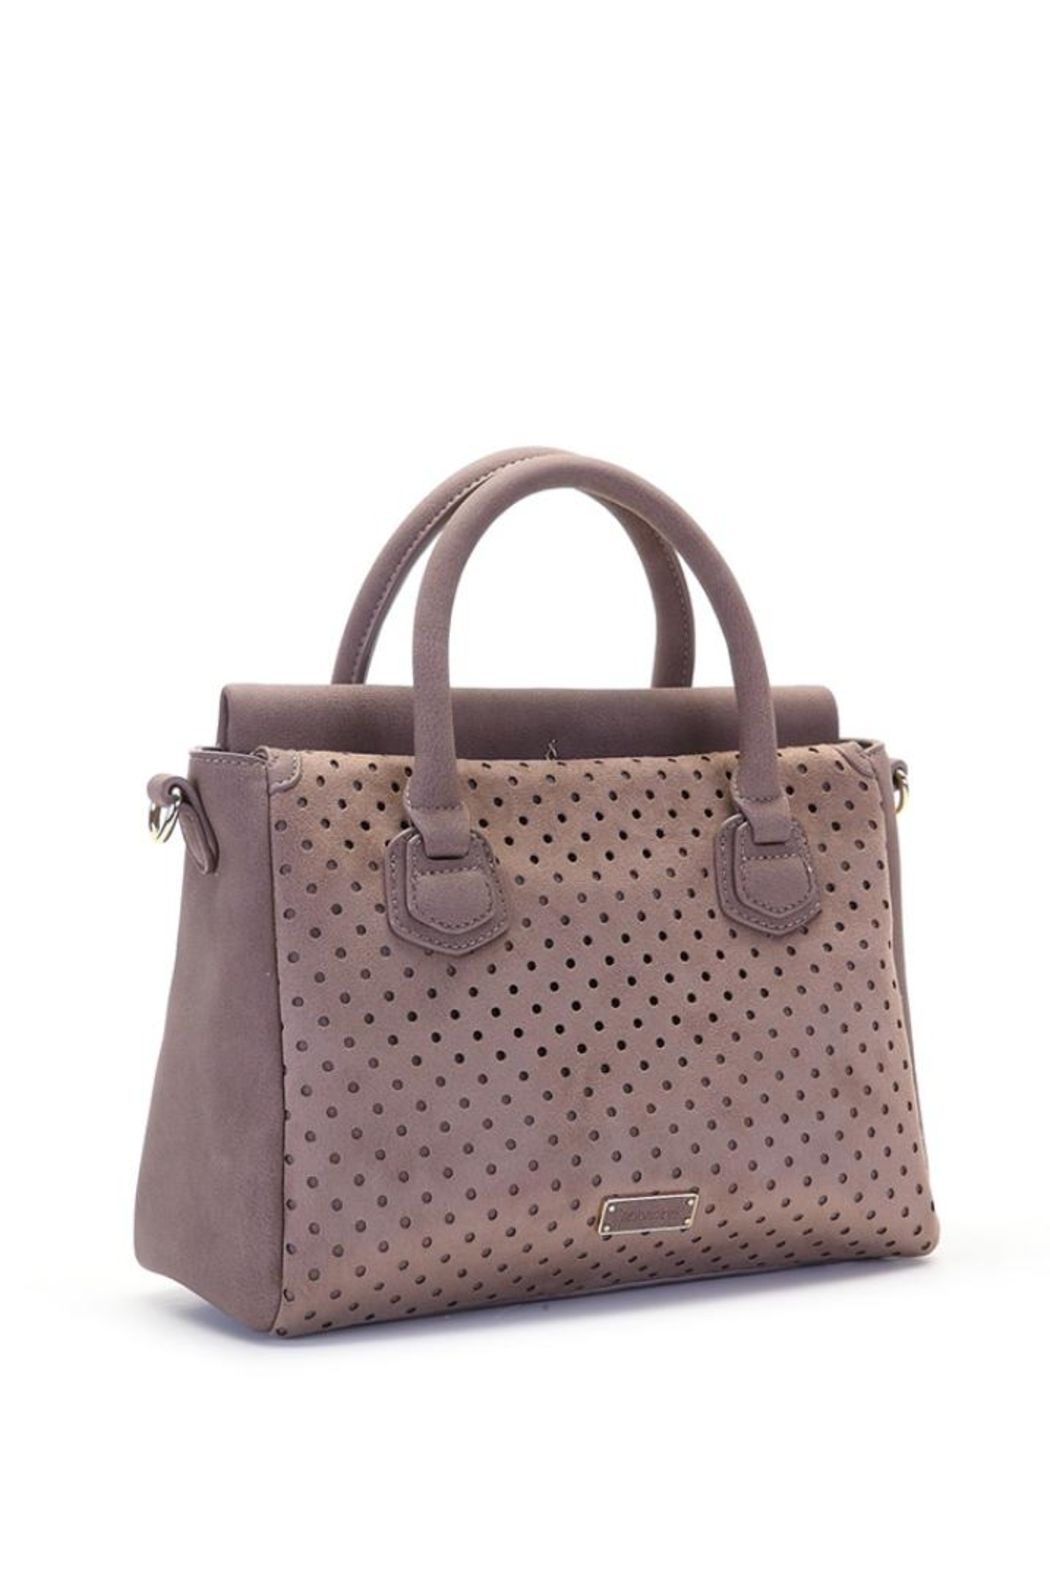 03c756f9c621 abbacino Blush taupe Handbag from Indiana by Essentials   Frosting ...